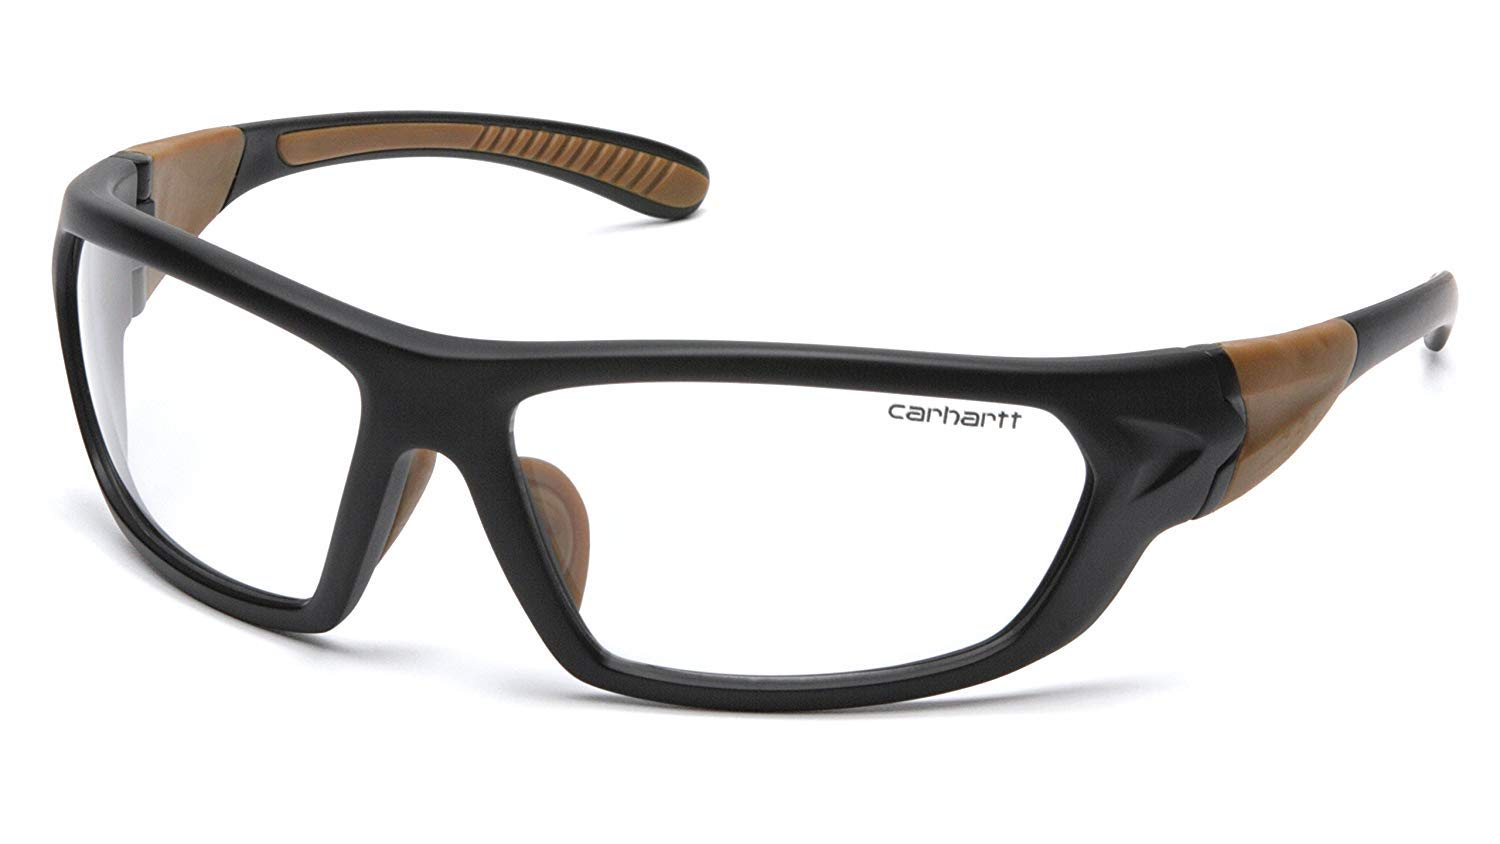 Carhartt Carbondale Safety Glasses with Clear Anti-Fog Lens (2 Pack) by Carhartt (Image #1)